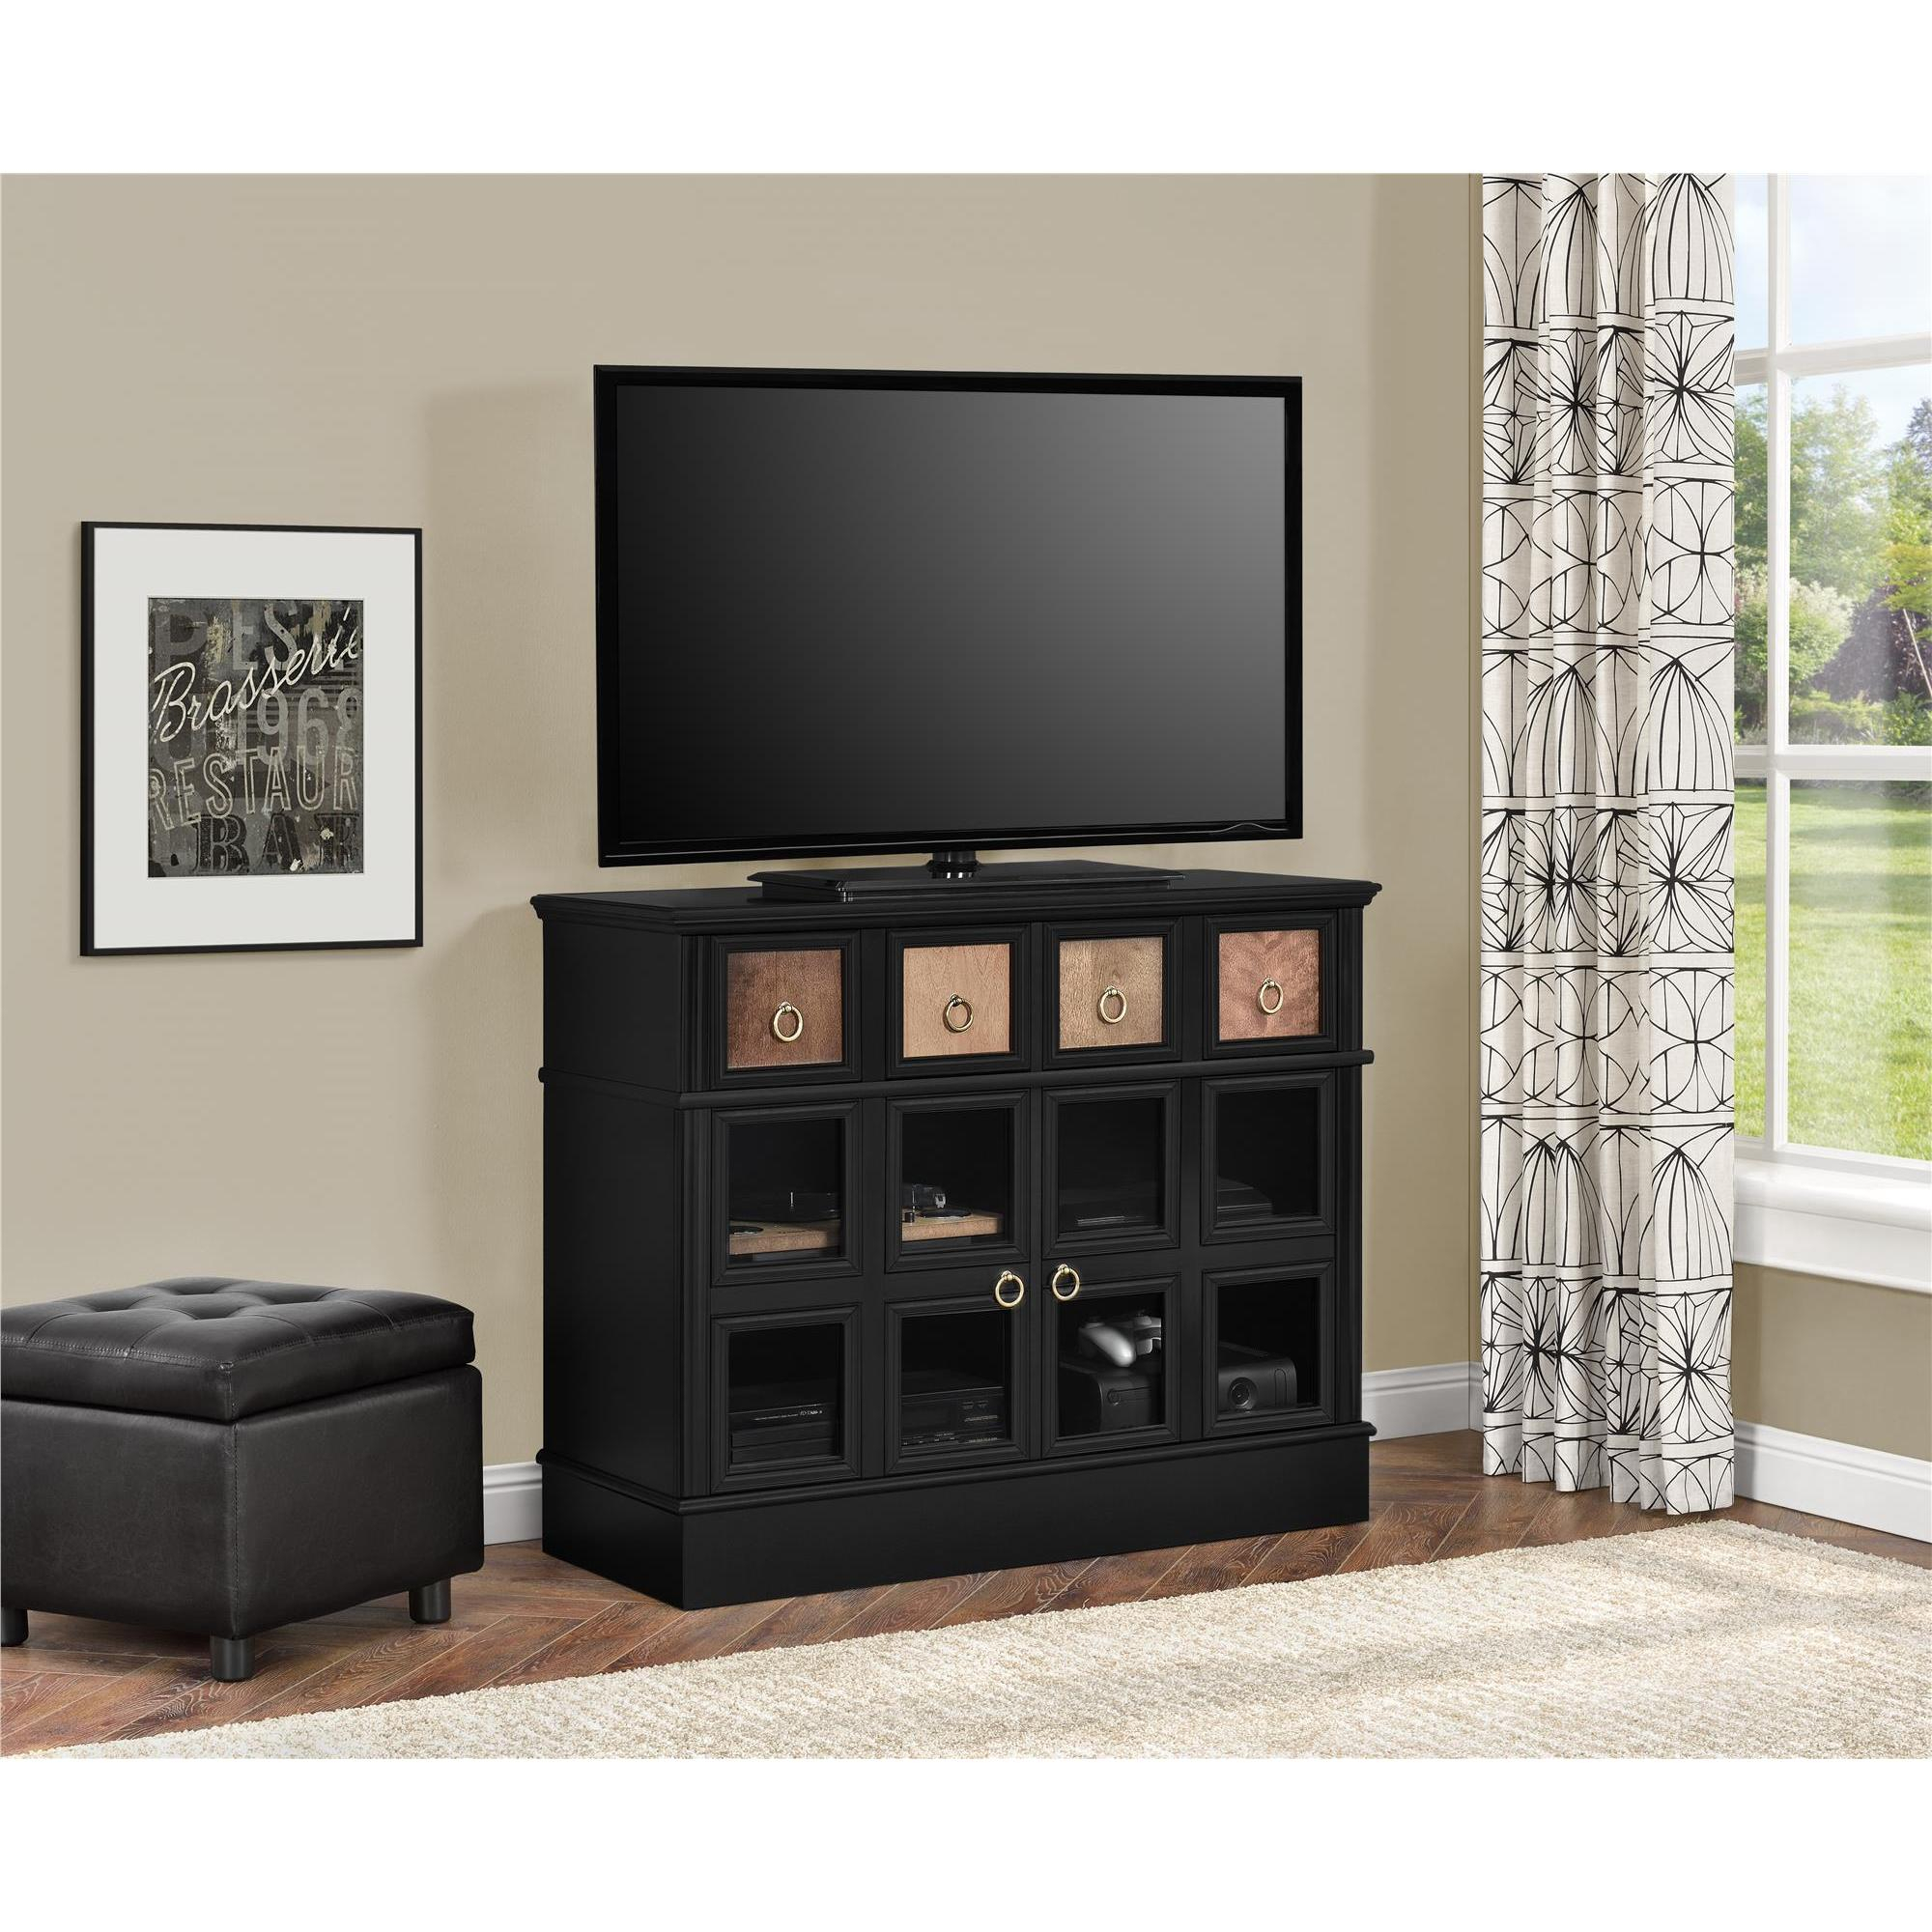 Shop Avenue Greene Wakefield Apothecary 42 Inch Black Tv Console Throughout Wakefield 97 Inch Tv Stands (View 6 of 30)